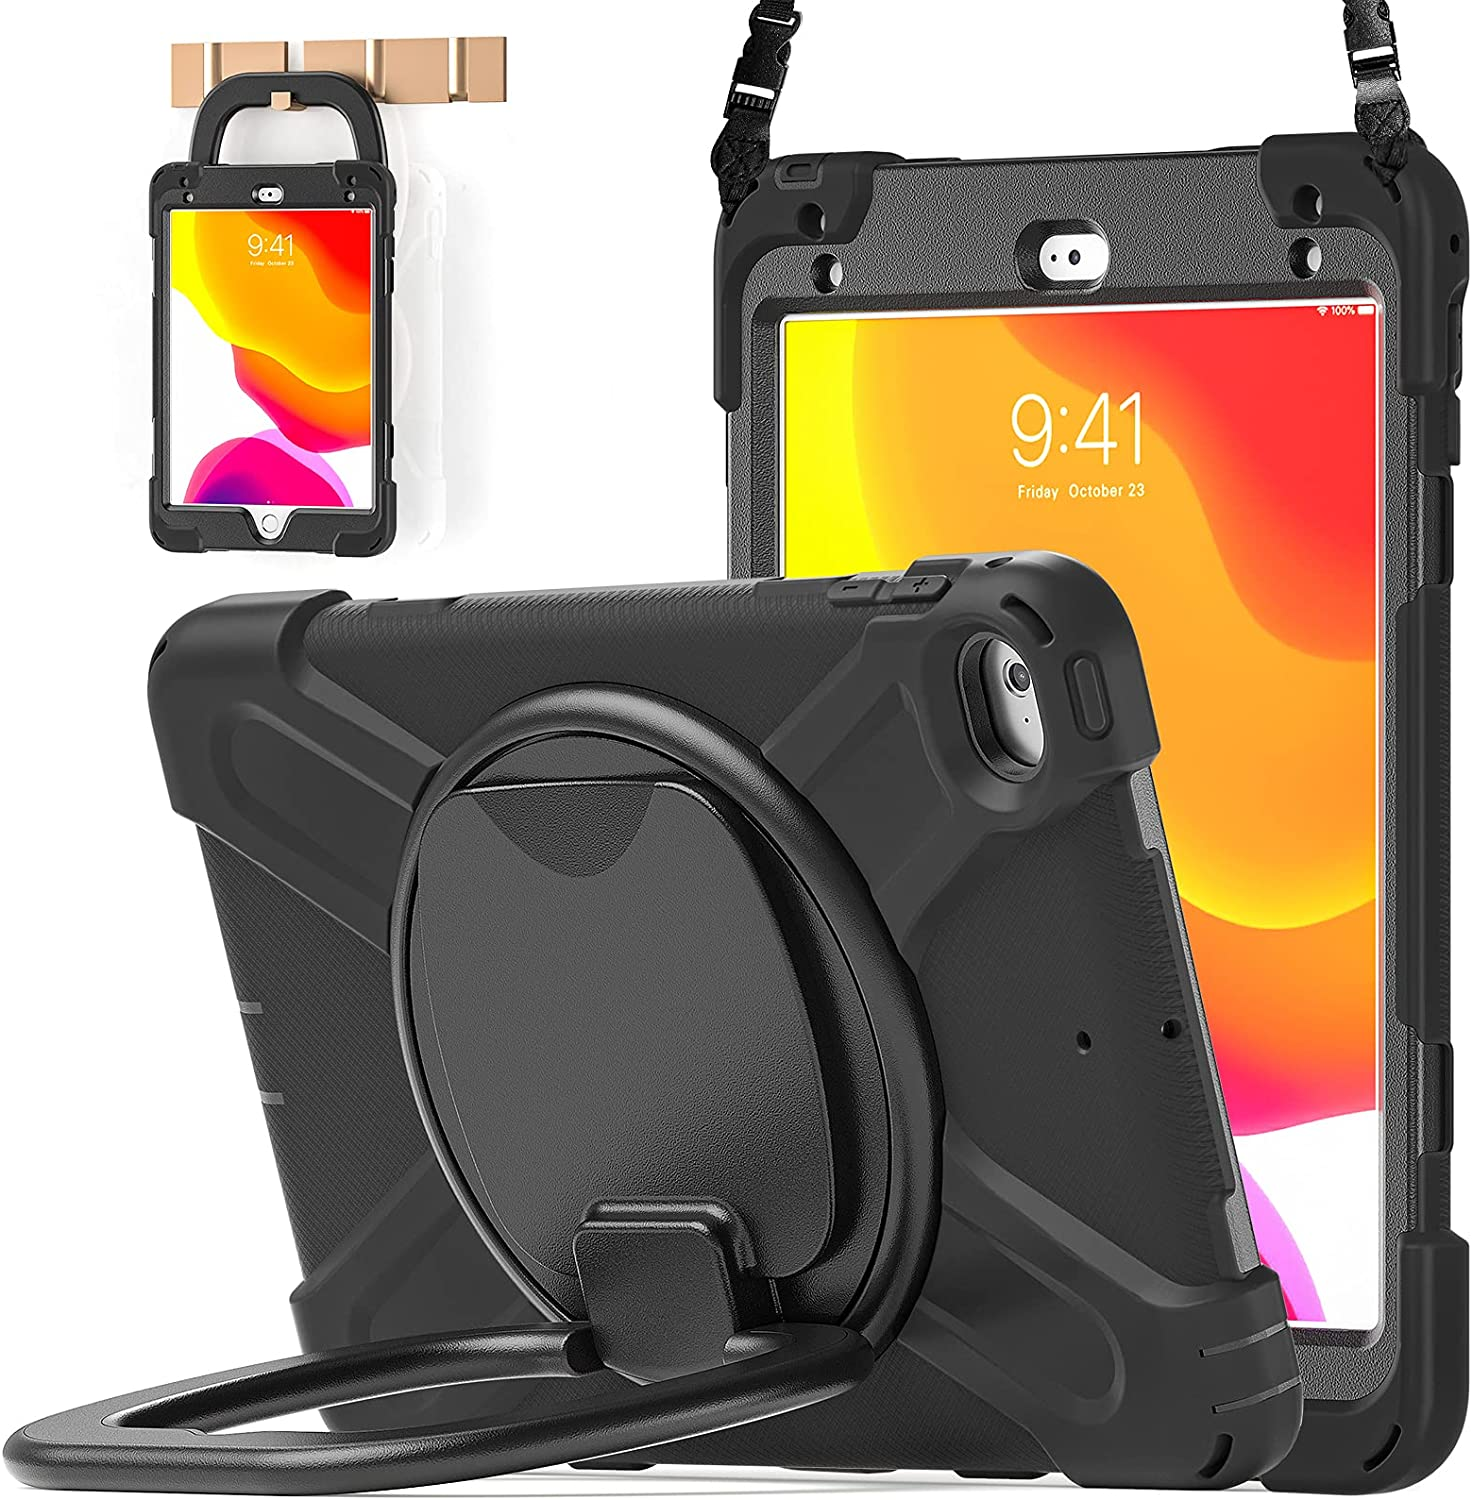 BATYUE iPad Mini 5 Case,iPad Mini 4 Case, Heavy Shockproof Drop Case with Pencil Holder , 360° Swivel Stand , Shoulder Strap;Cover for iPad Mini 5th/4th Generation 7.9 Inch;for KidsBlack